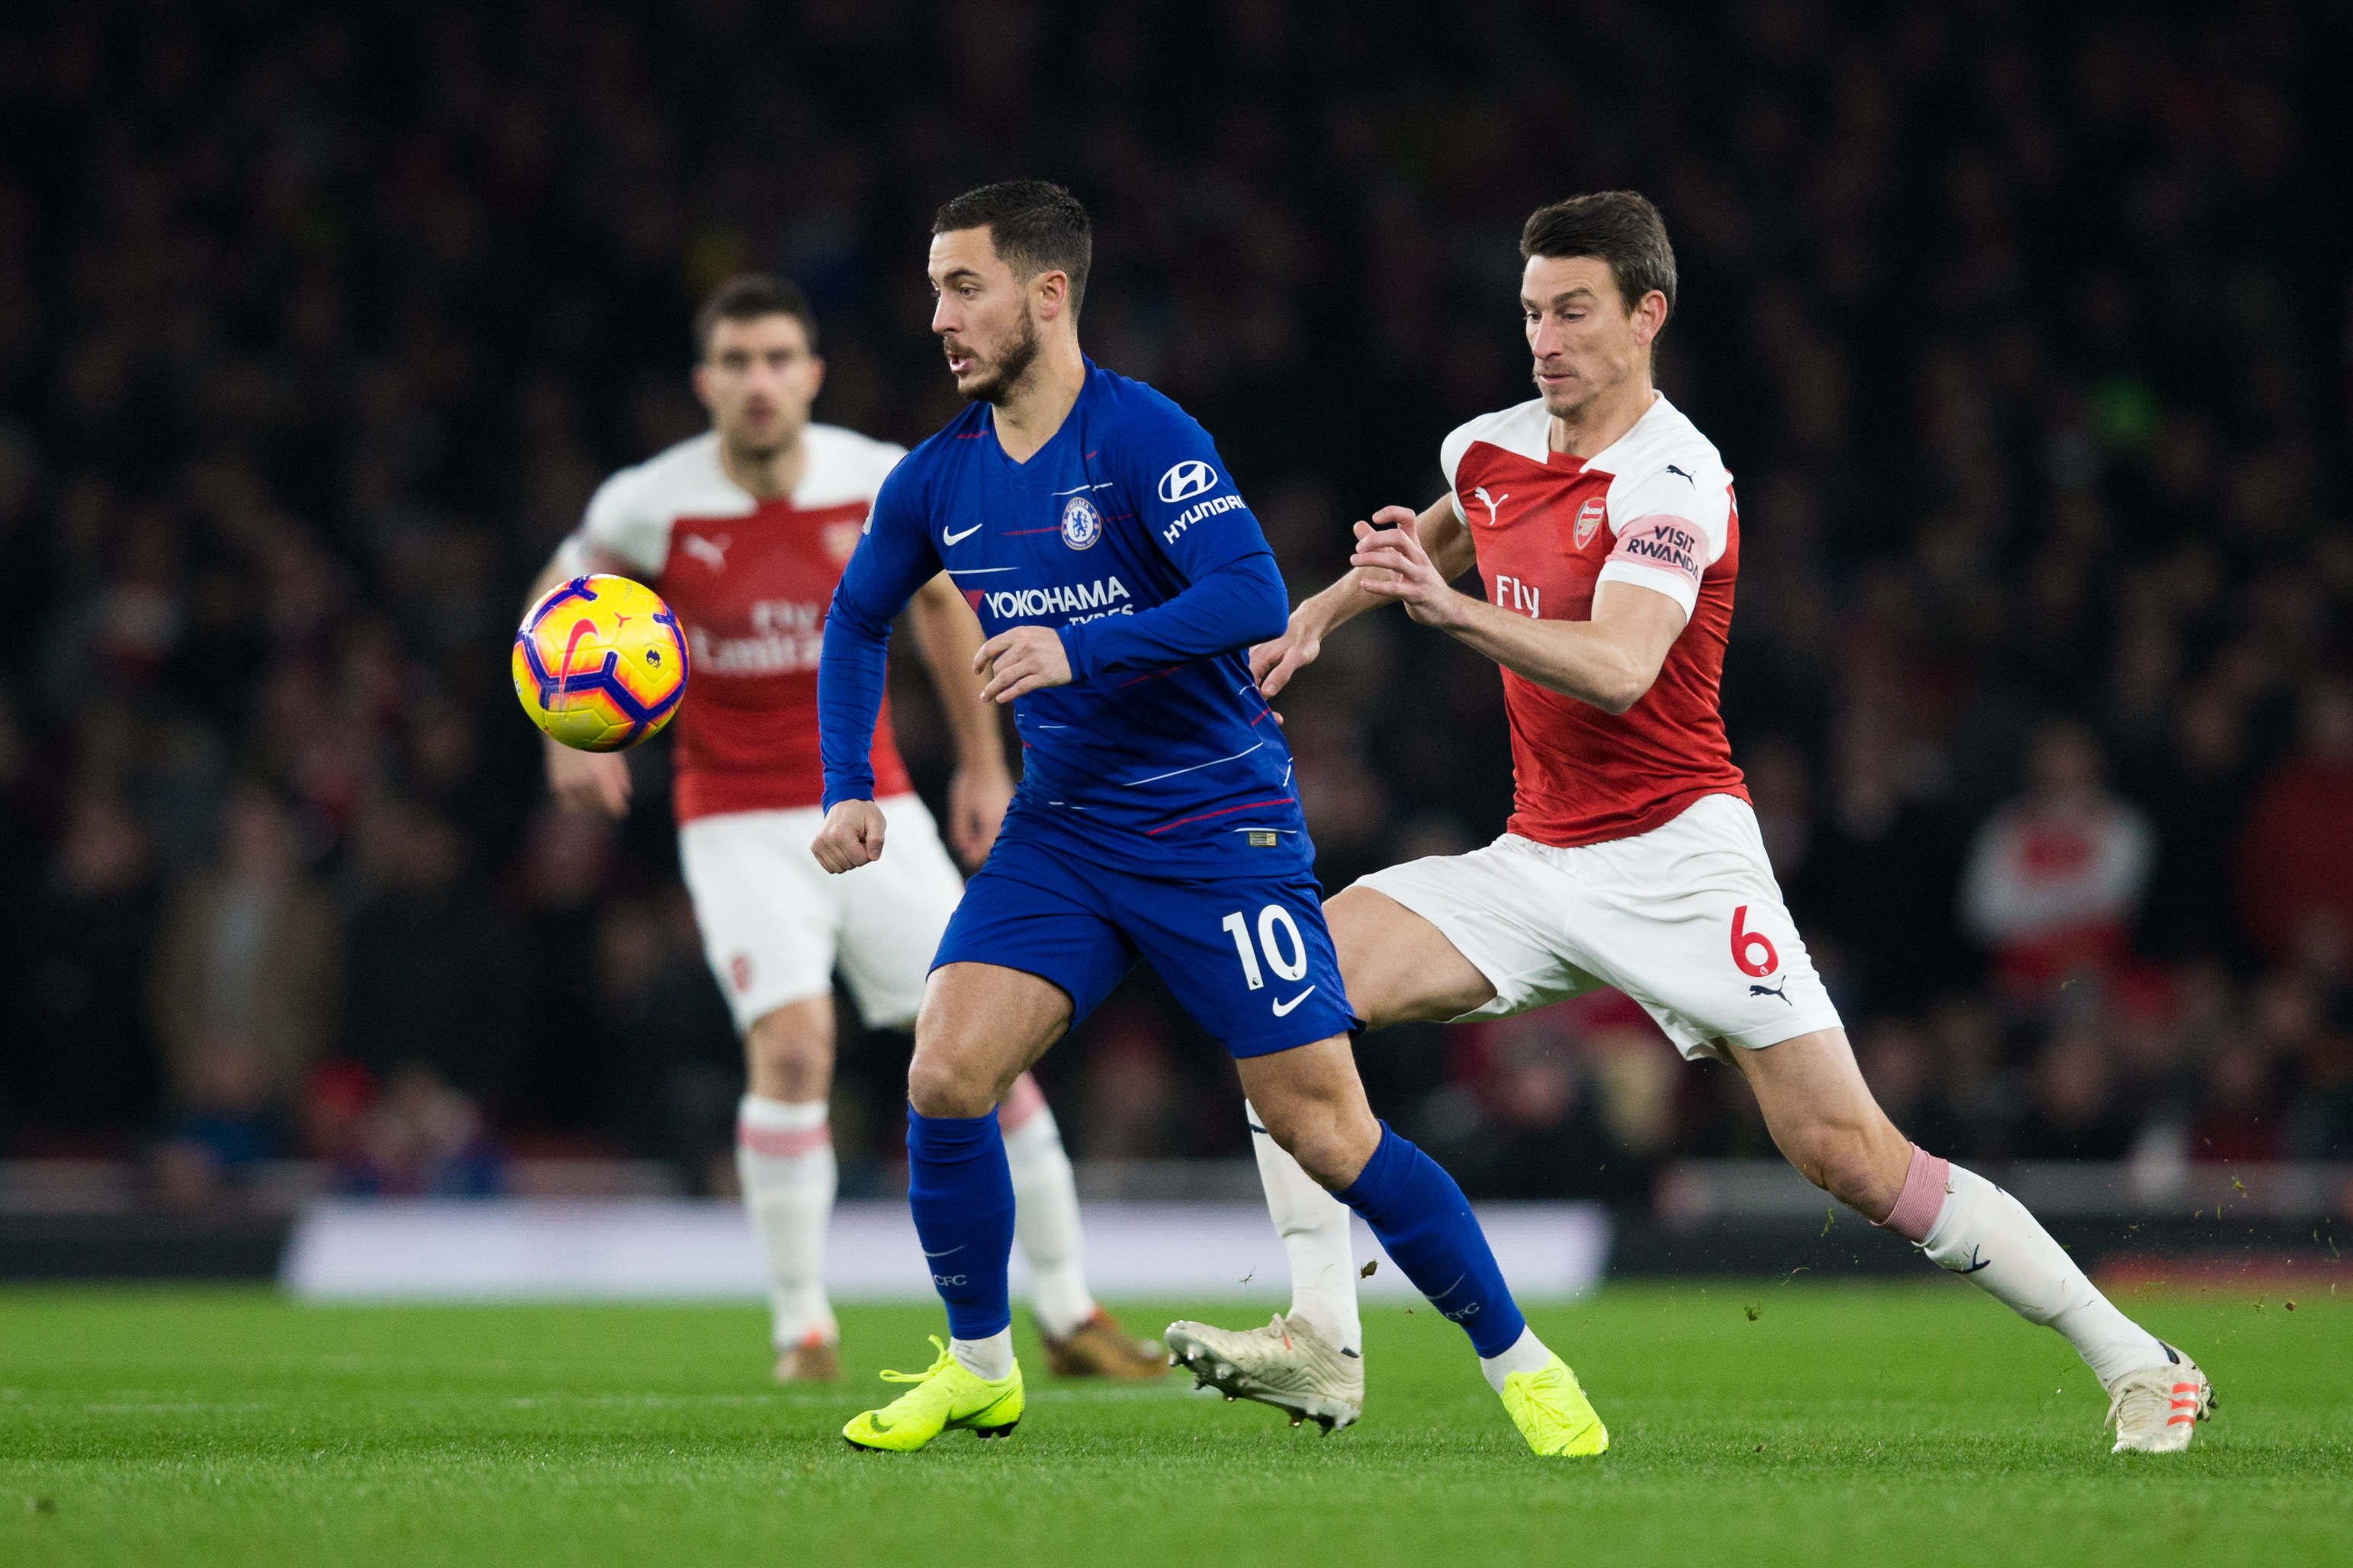 Europa League Final: Chelsea vs. Arsenal Preview and Betting Tips